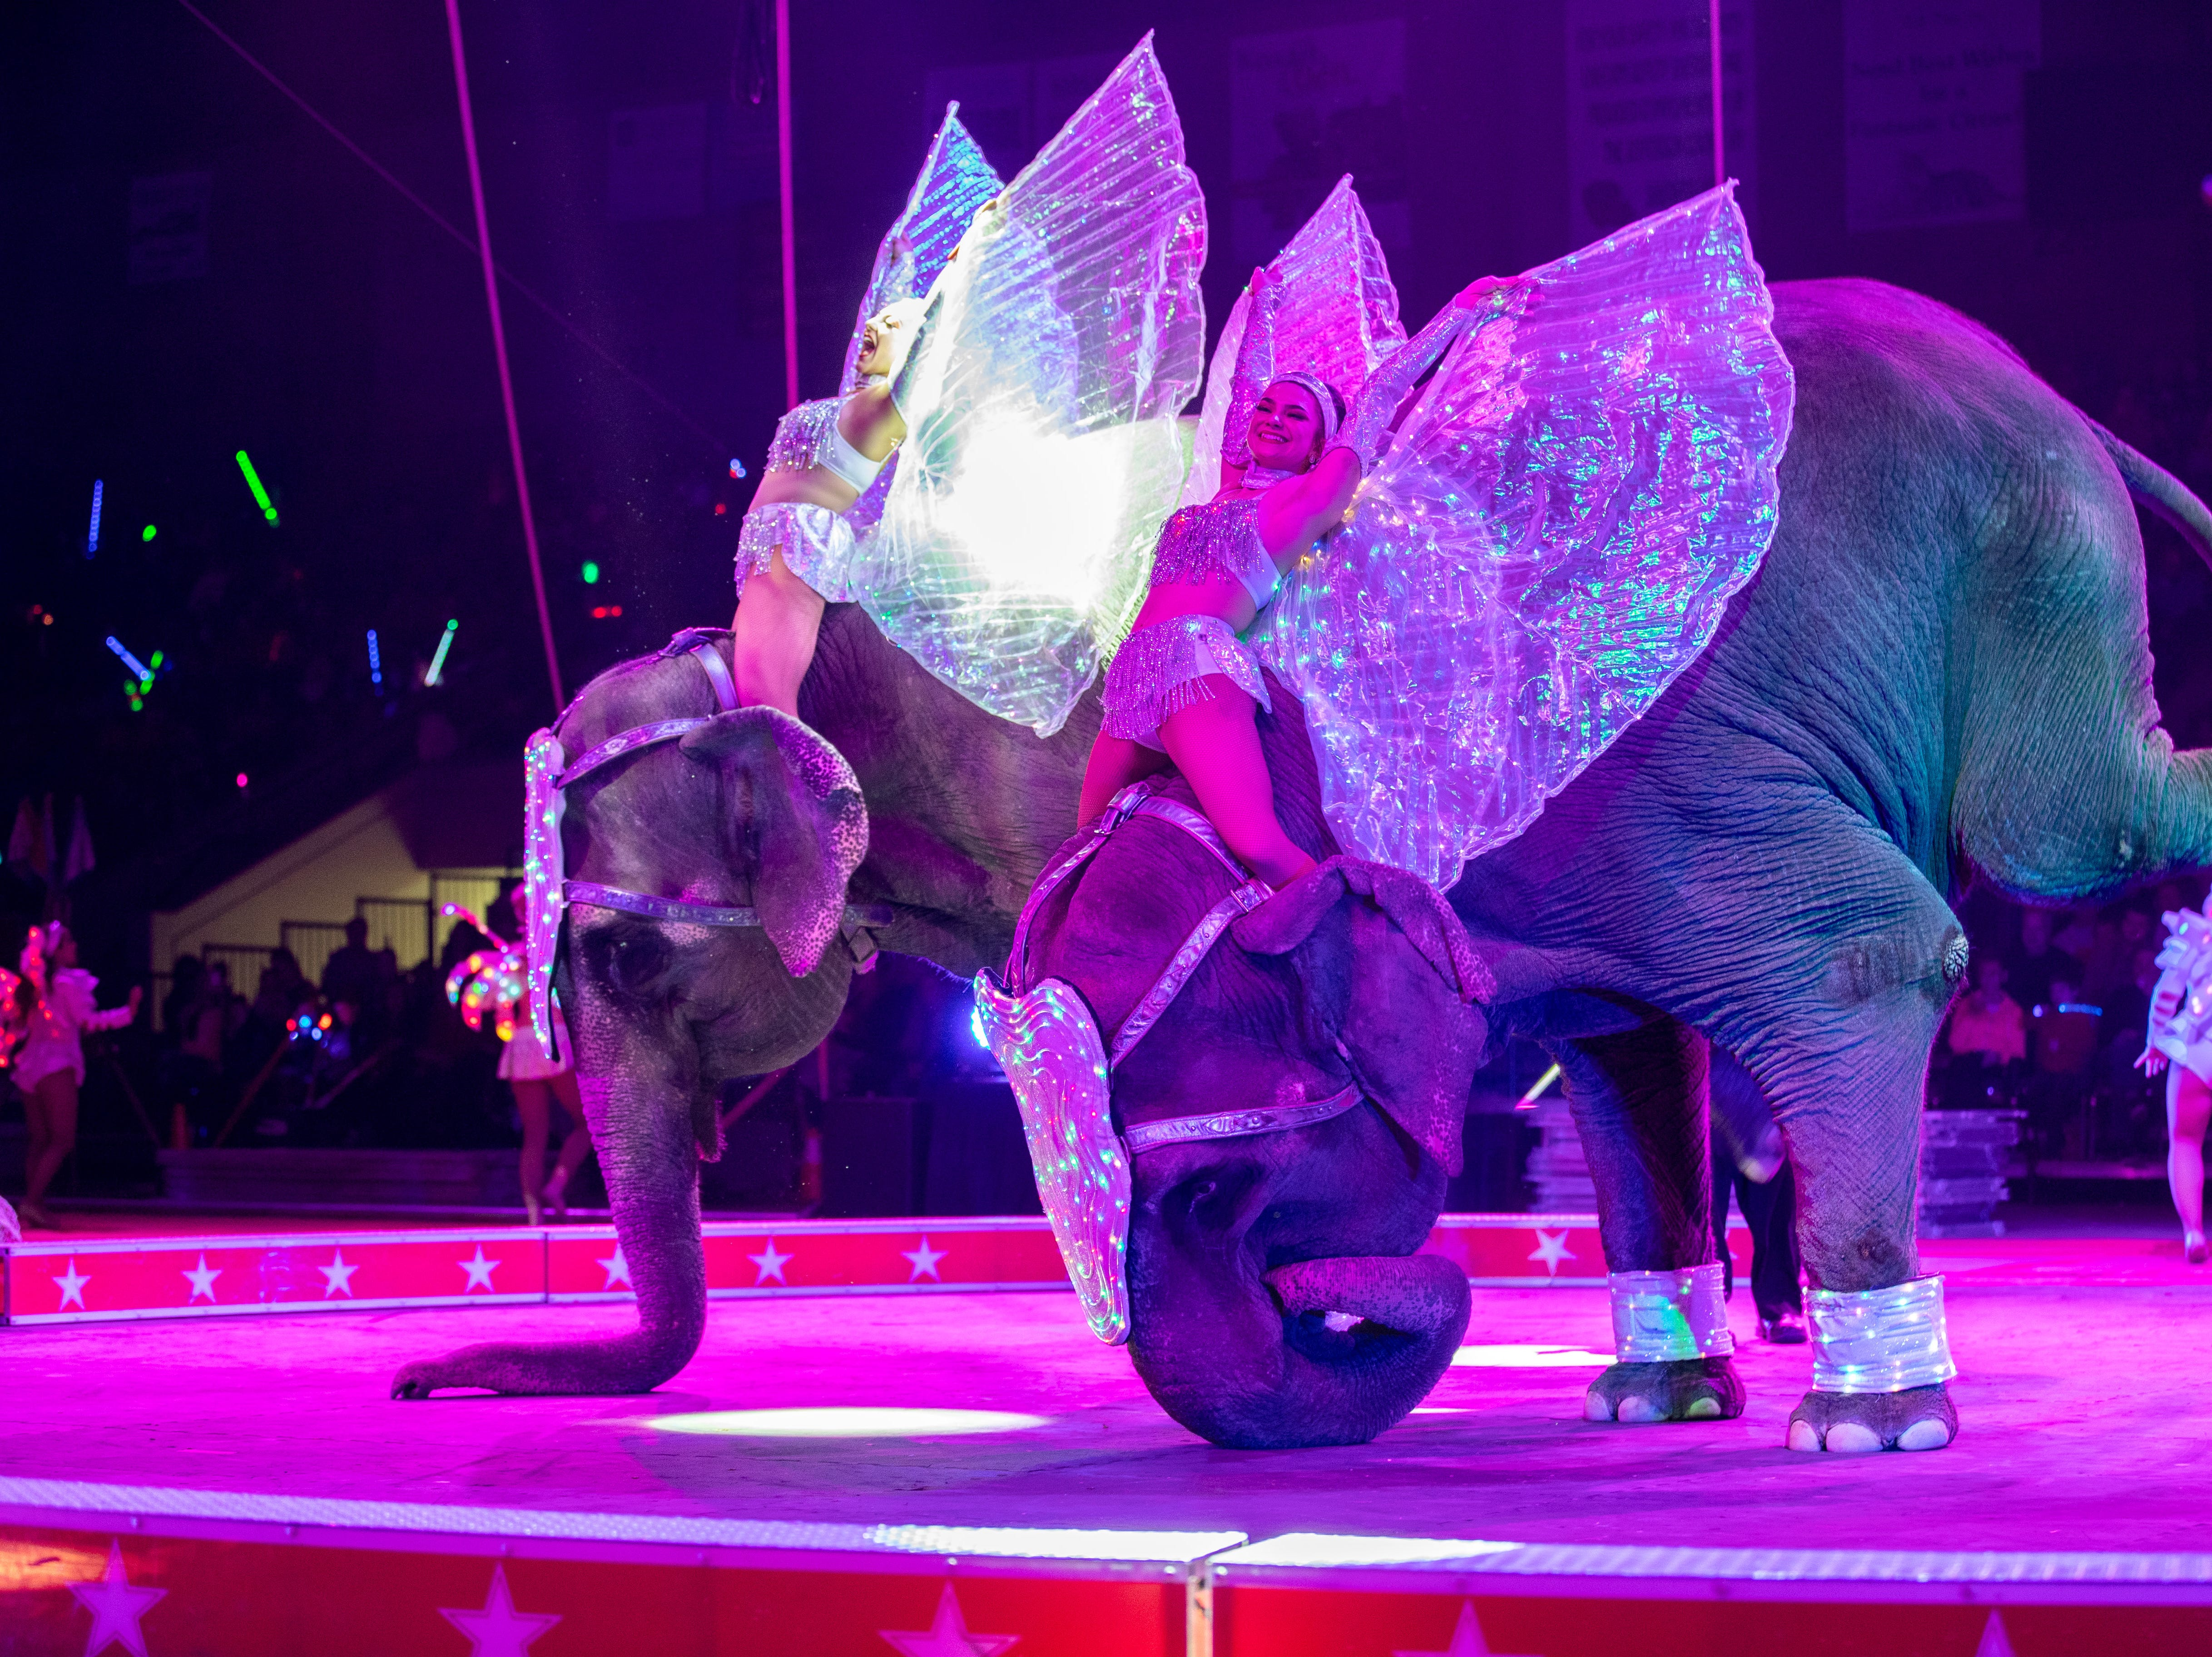 Two enormous elephants use their trunks for balance as they kick their hind legs off the ground, Saturday, Feb. 9, 2019 in Louisville Ky.